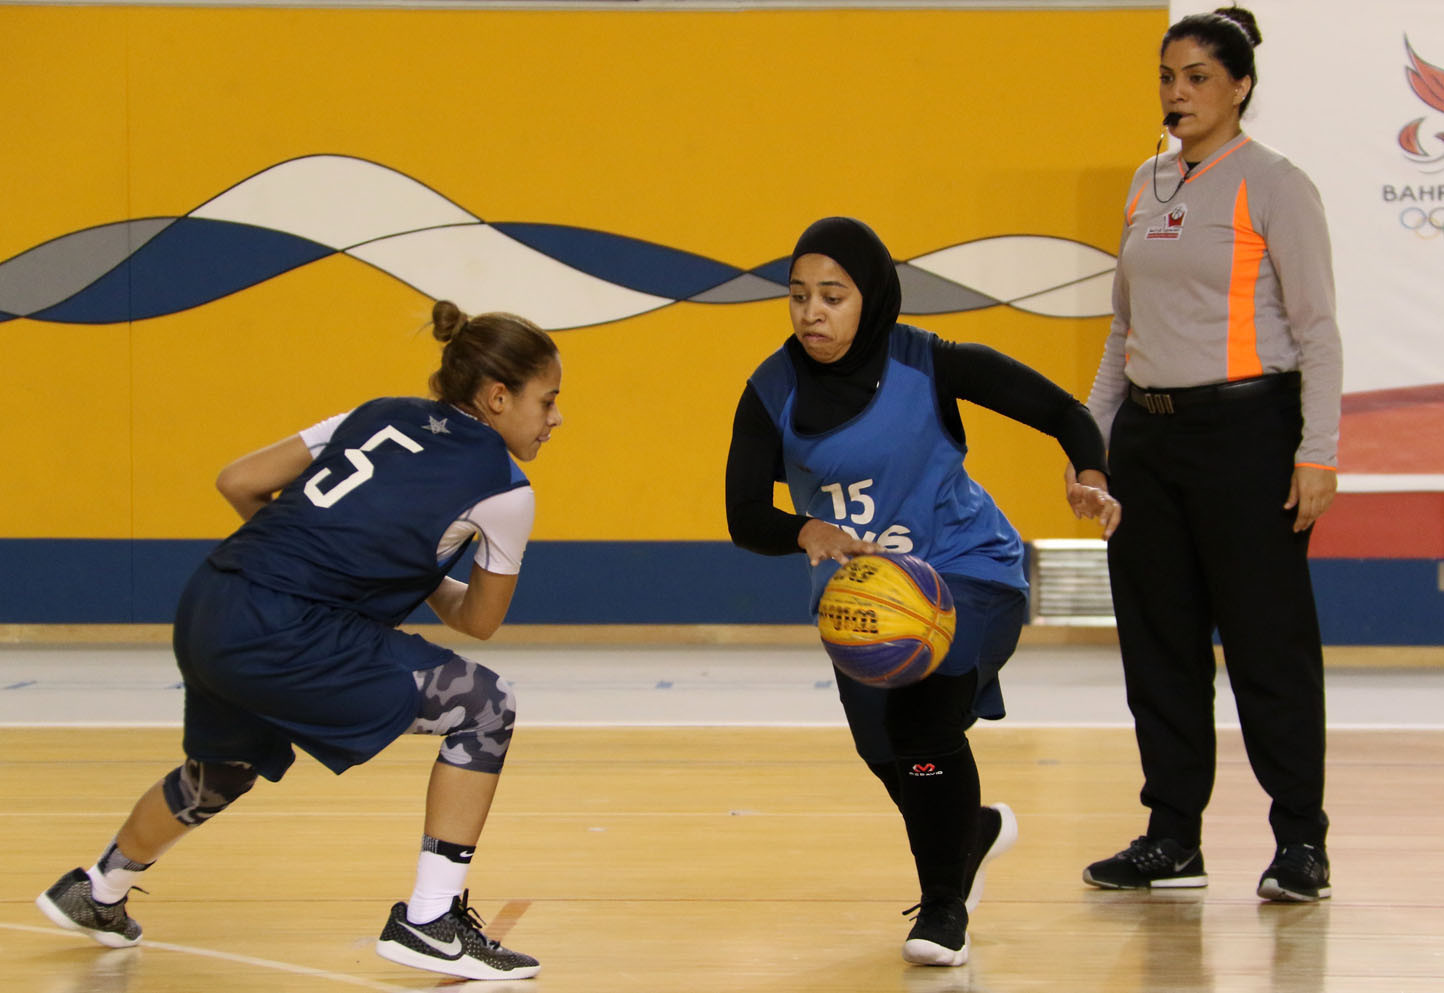 3x3 basketball was among the sports contested at last year's Bahrain Women's Day Sportsfest ©BOC